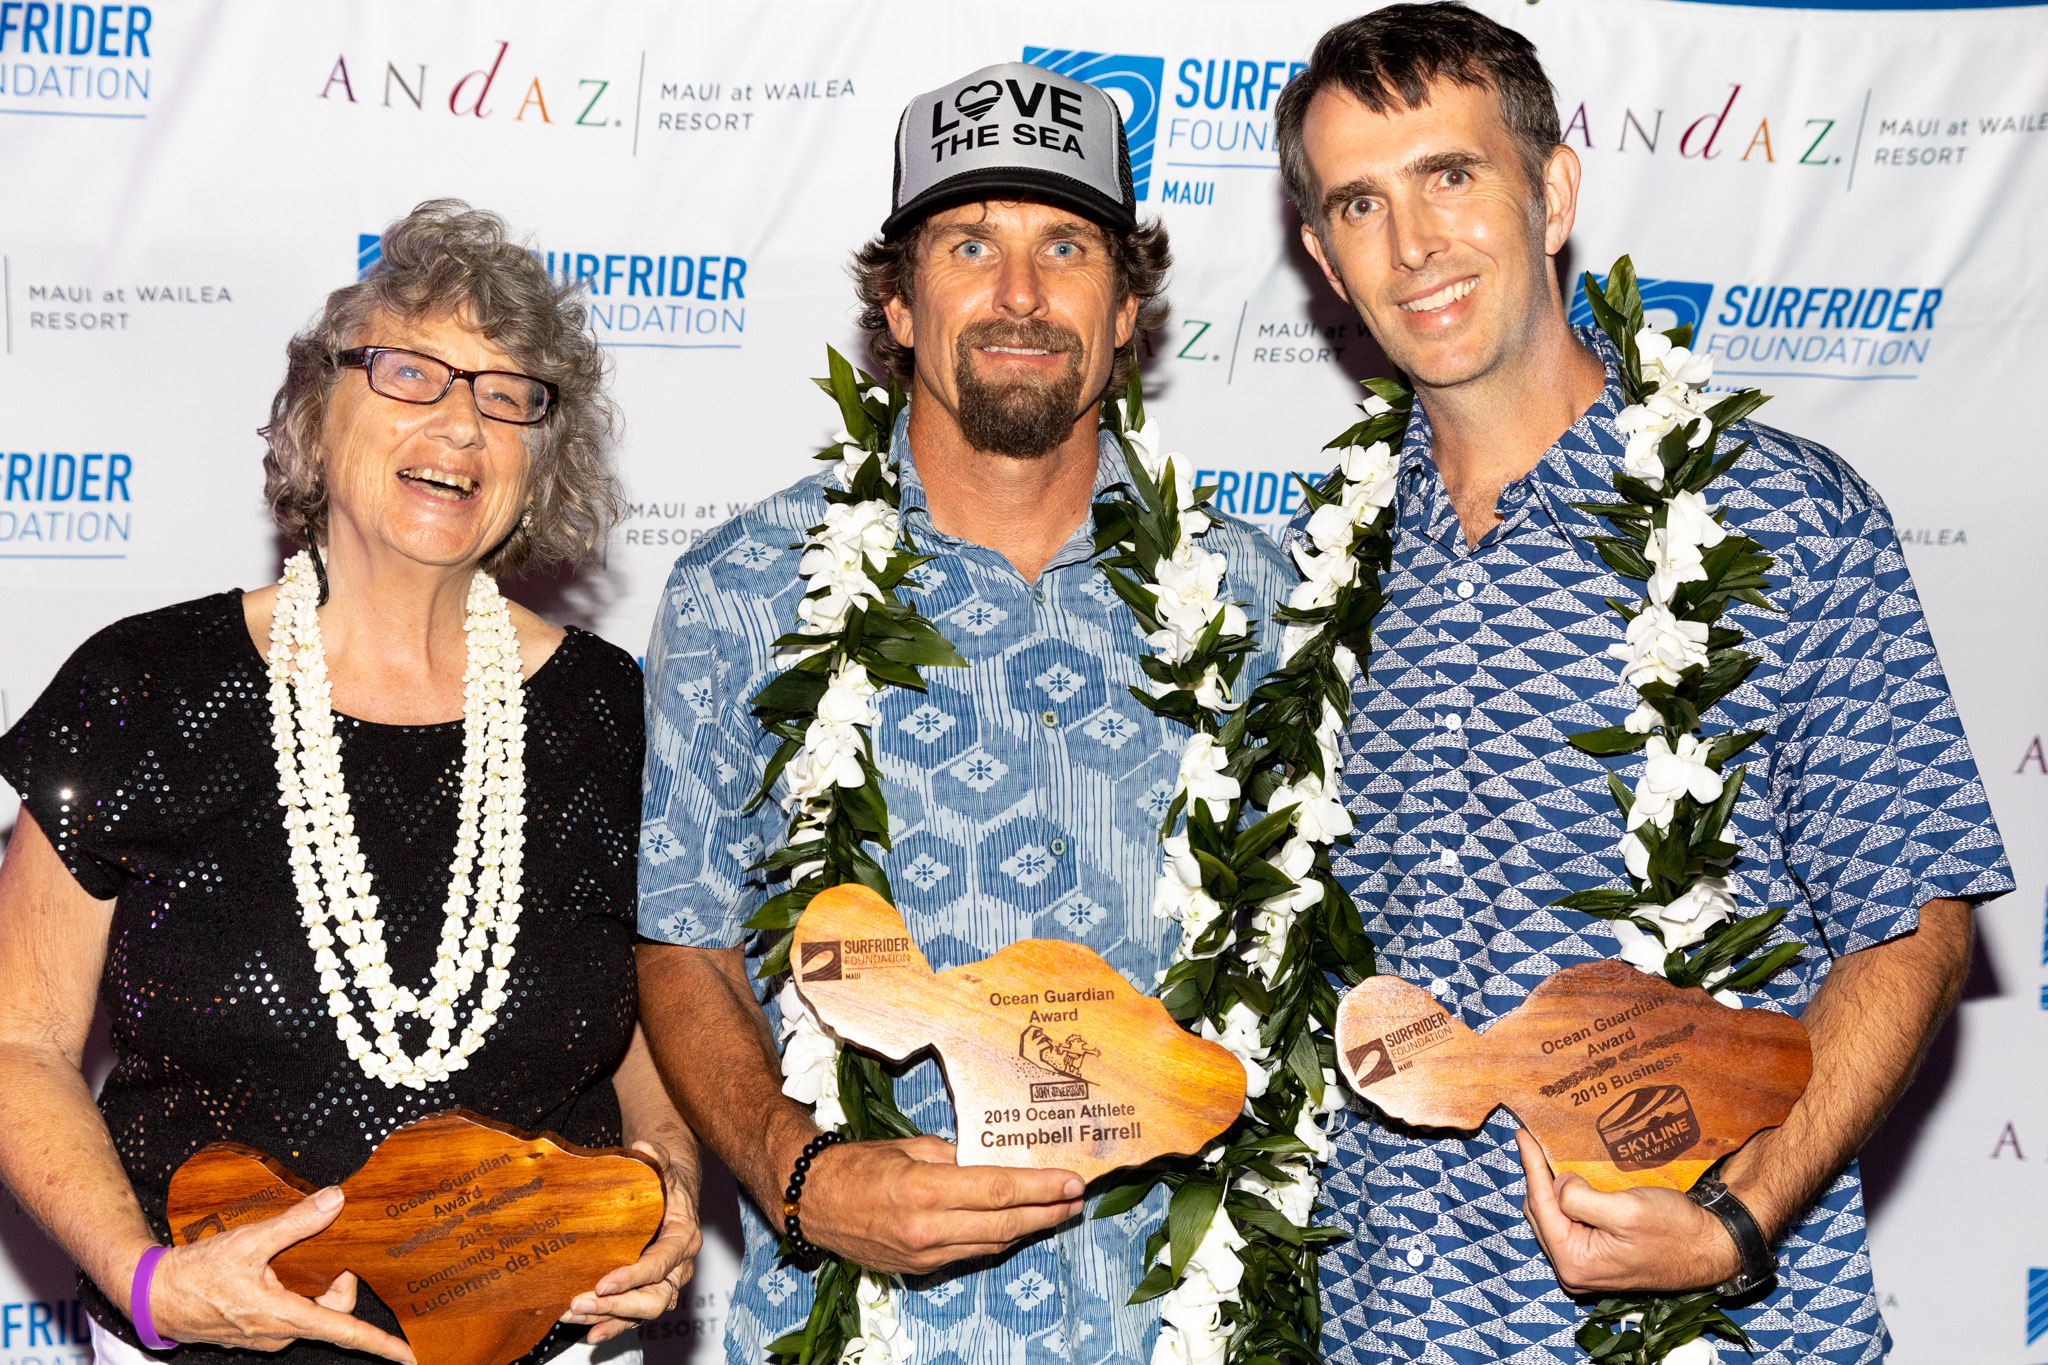 Surfrider-Foundation-OGA-10-12-19_123_web_berkowitz